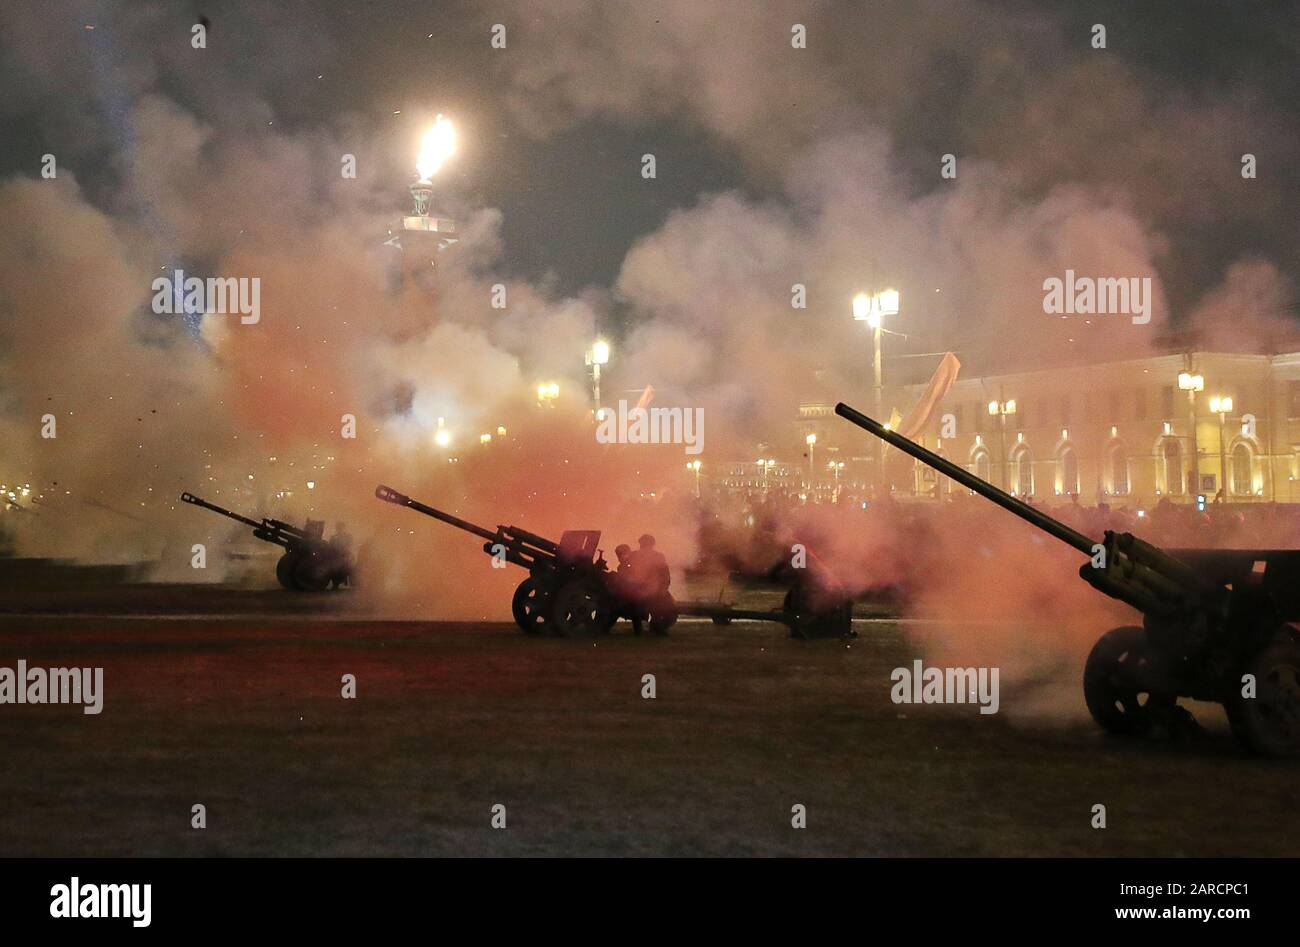 ST PETERSBURG, RUSSIA - JANUARY 27, 2020: Artillery guns during a historical reenactment of the 27 January 1944 fireworks as part of the events marking the 76th anniversary of lifting of the WWII Siege of Leningrad during the 1941-45 Great Patriotic War, the Eastern Front of World War II, on the Spit of Vasilievsky Island. Alexander Demianchuk/TASS Stock Photo